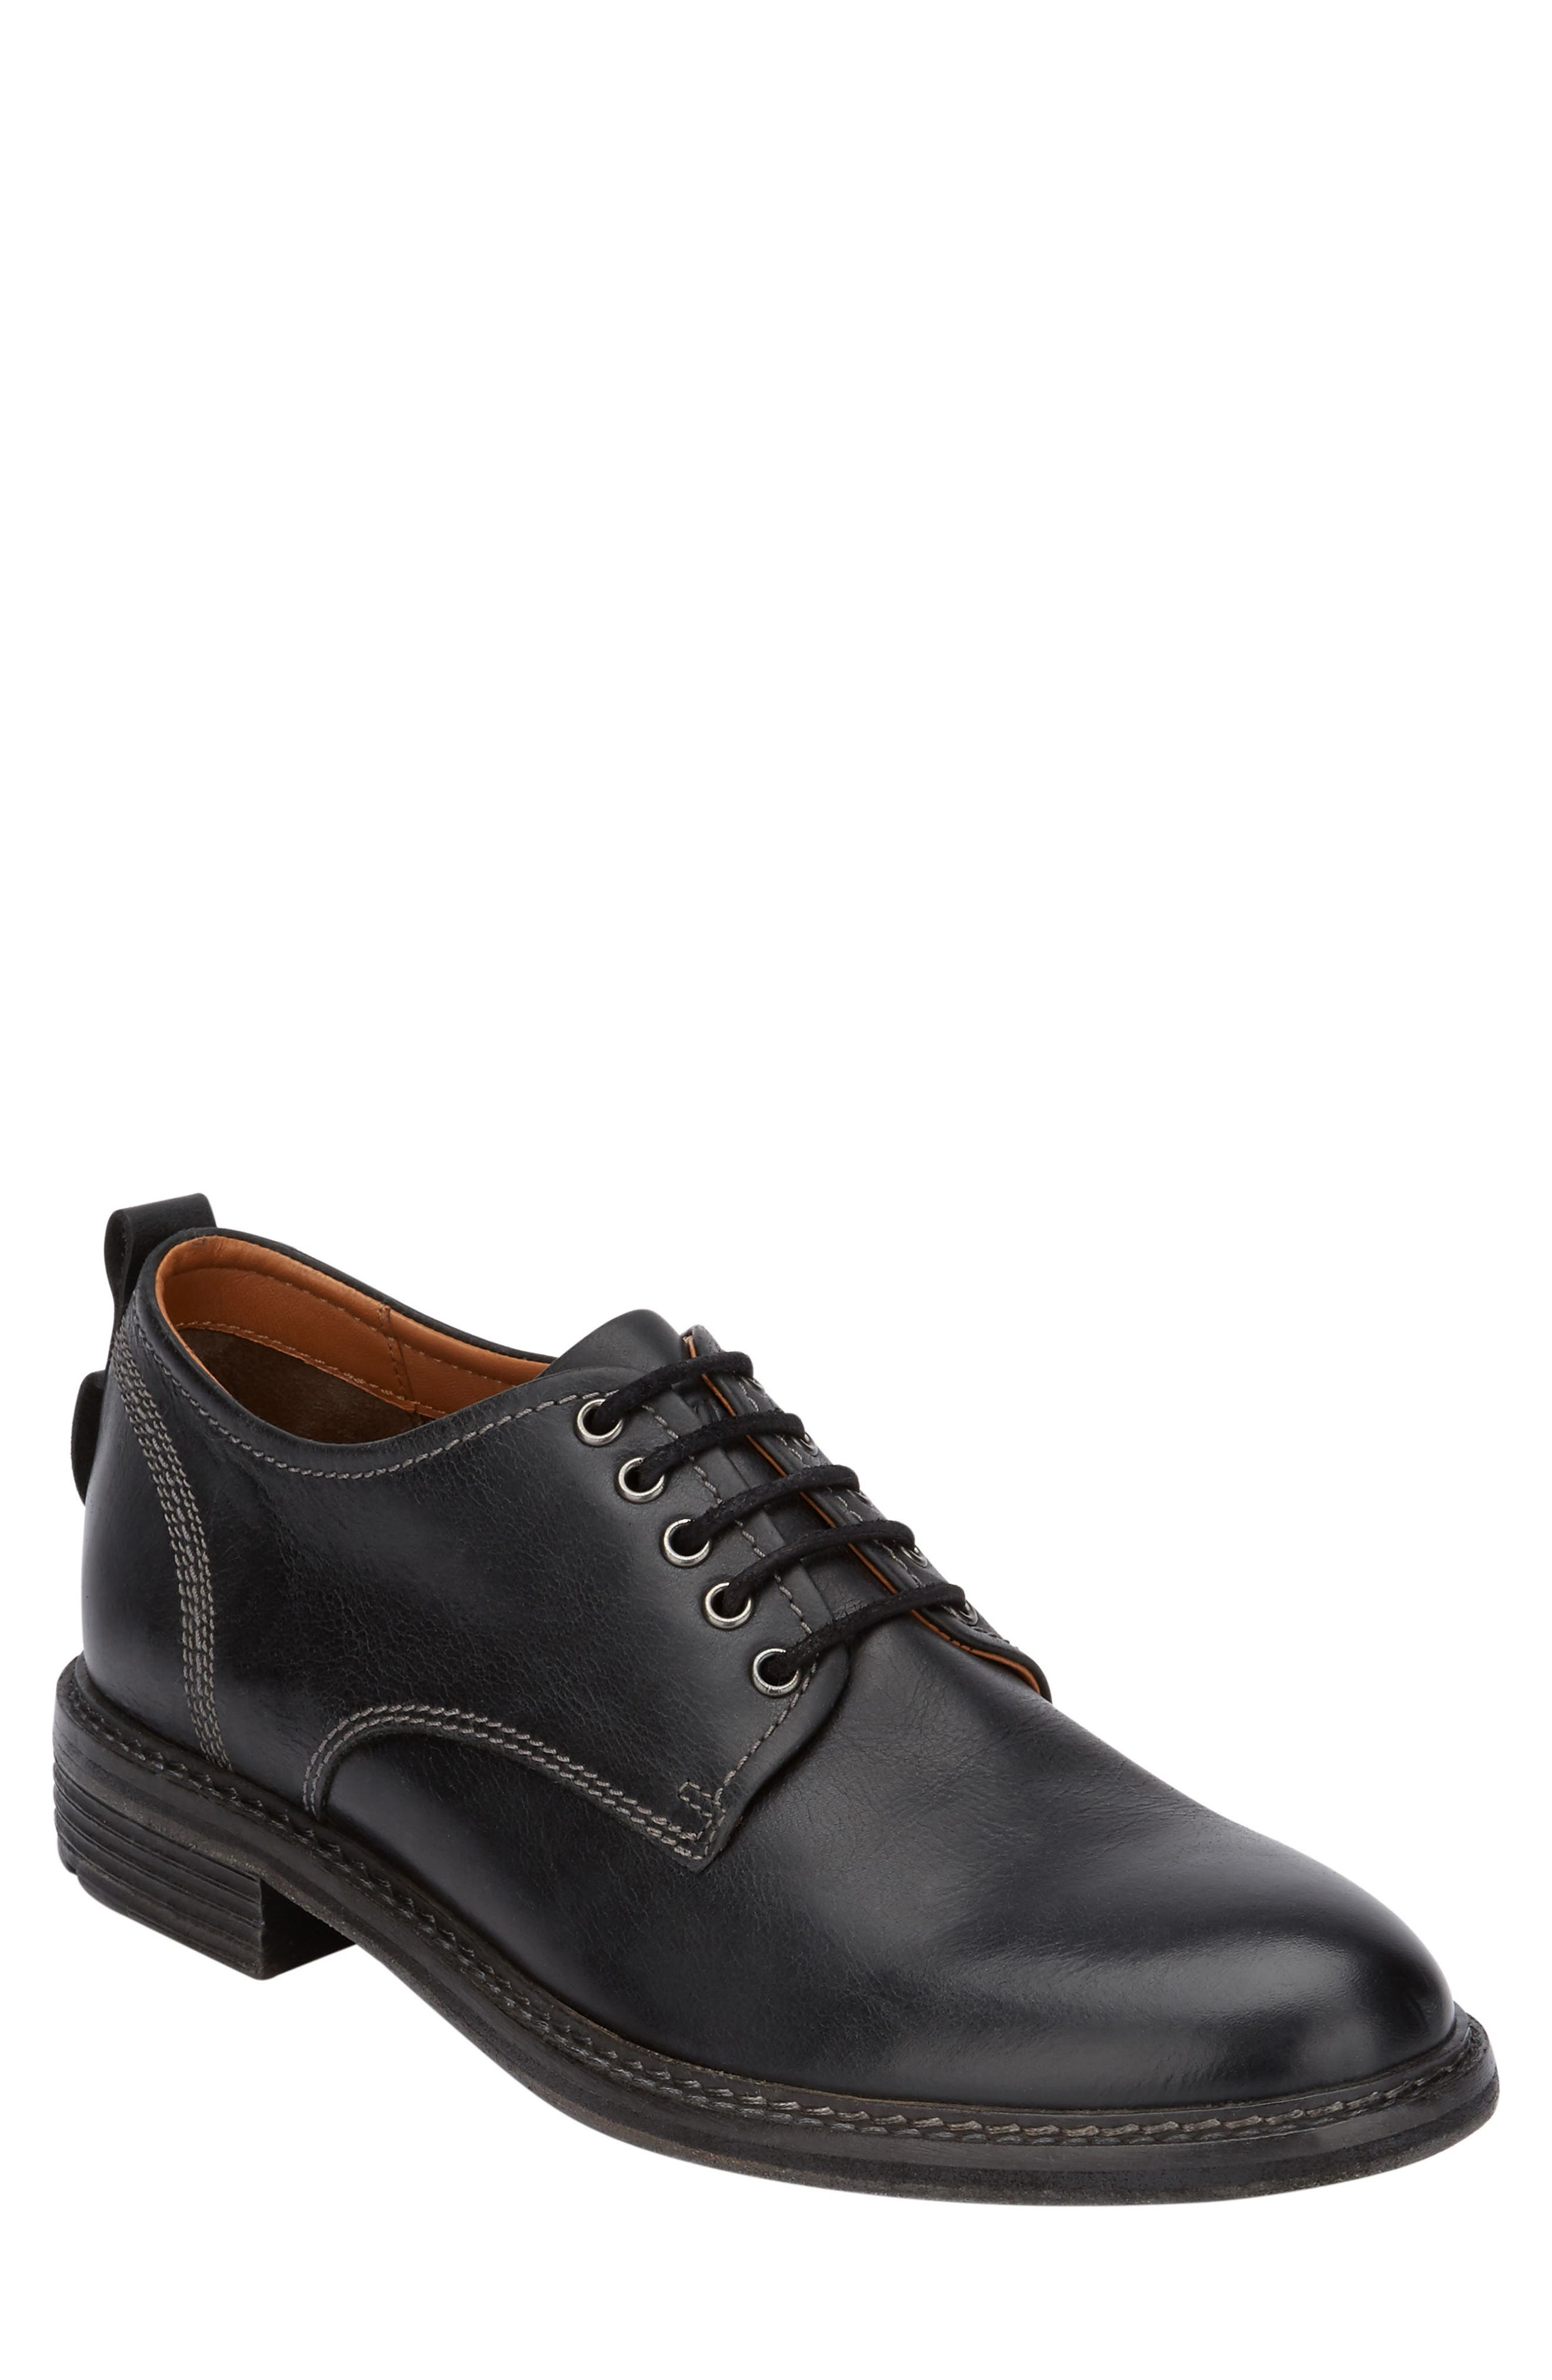 G.H. Bass Hanson Plain Toe Derby,                             Main thumbnail 1, color,                             001